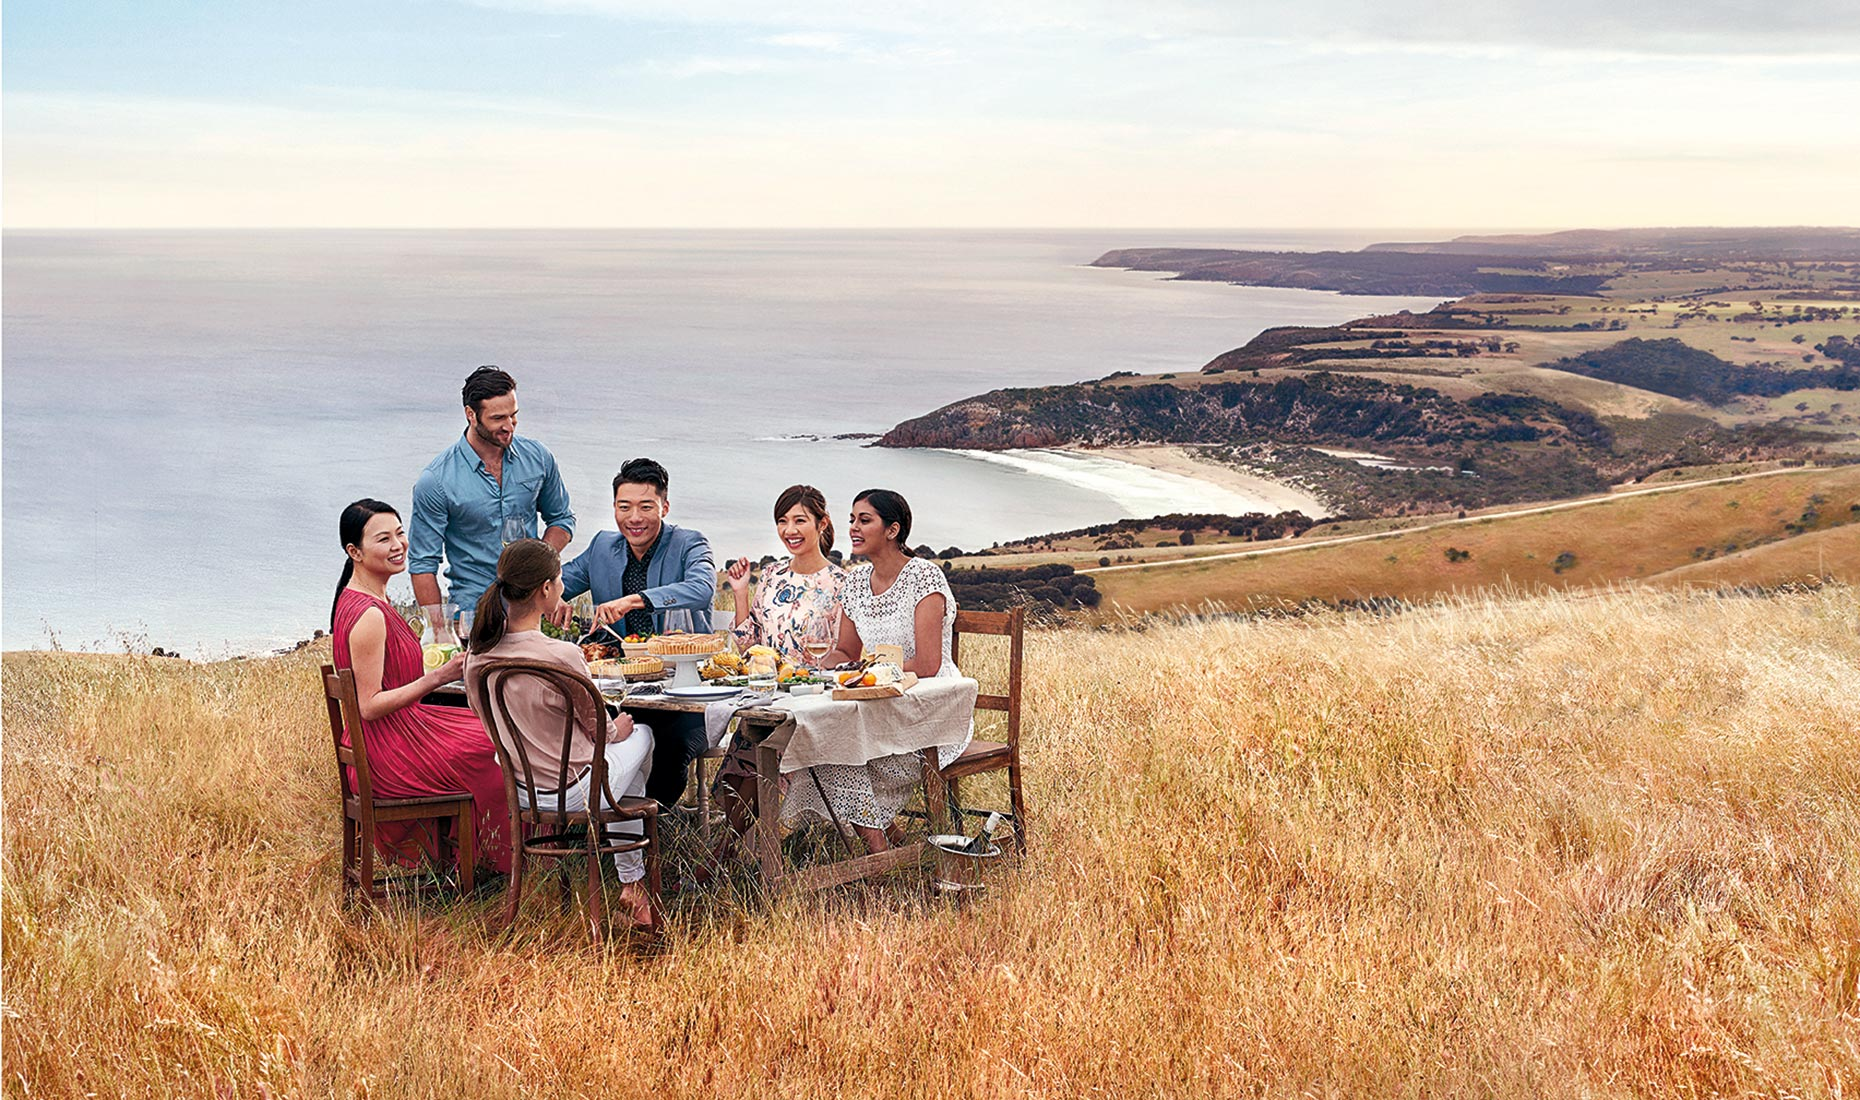 Kangaroo Island, South Australia photography for Tourism Australia. Where the bloody hell are you?